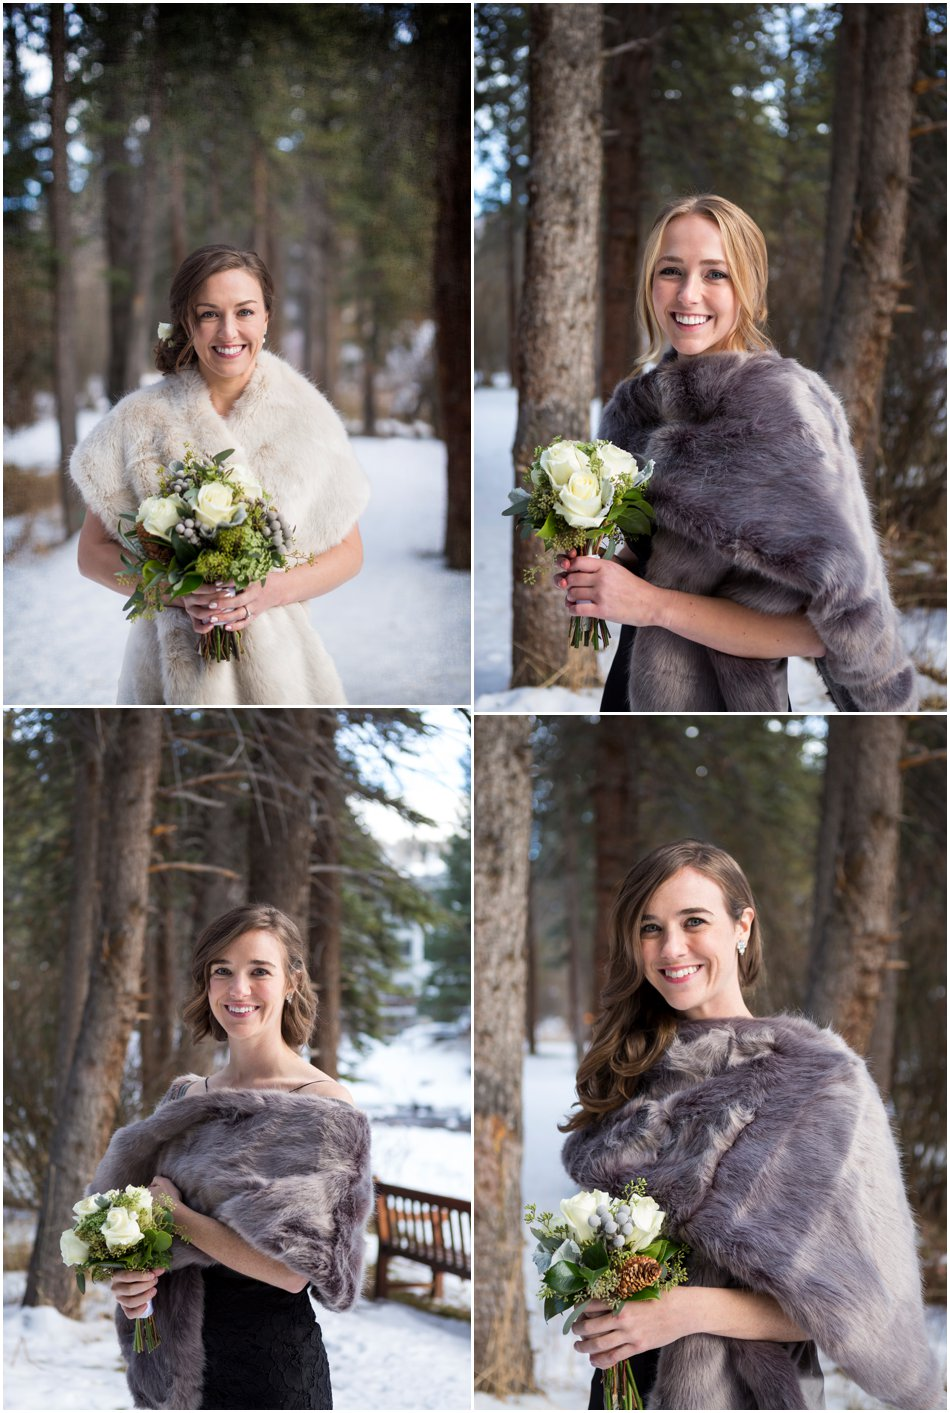 Donovan Pavilion Wedding |Vail Colorado Wedding | Colorado Winter Mountain Wedding |Annie and Justin's Winter Mountain Wedding_0039